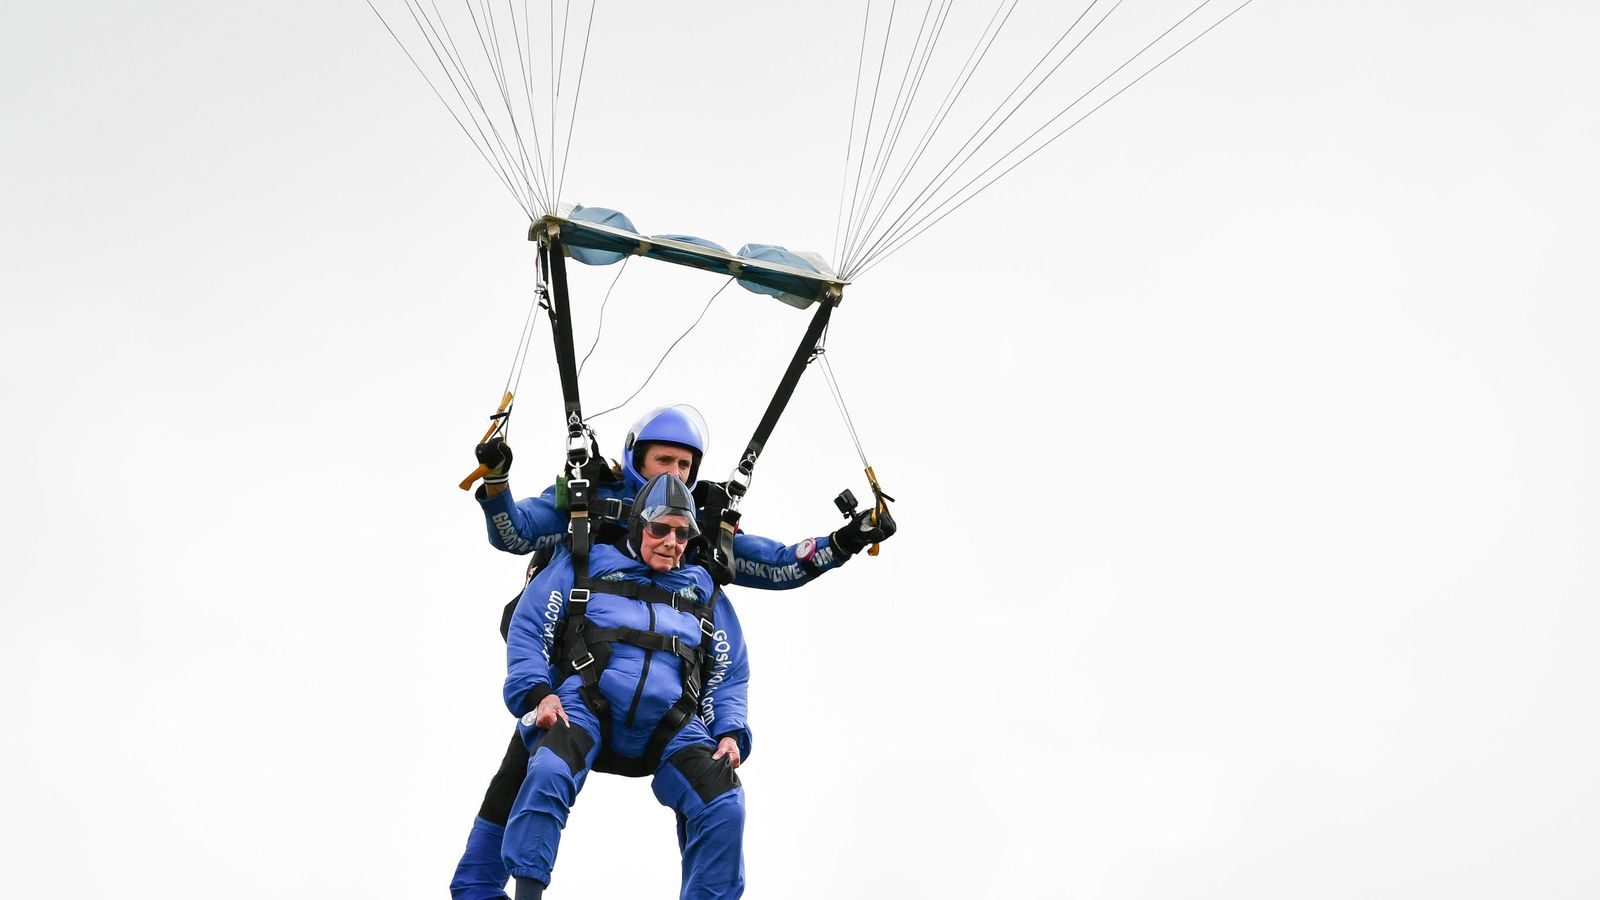 D-Day veteran Harry Read completes first skydive since landing in Normandy in 1944